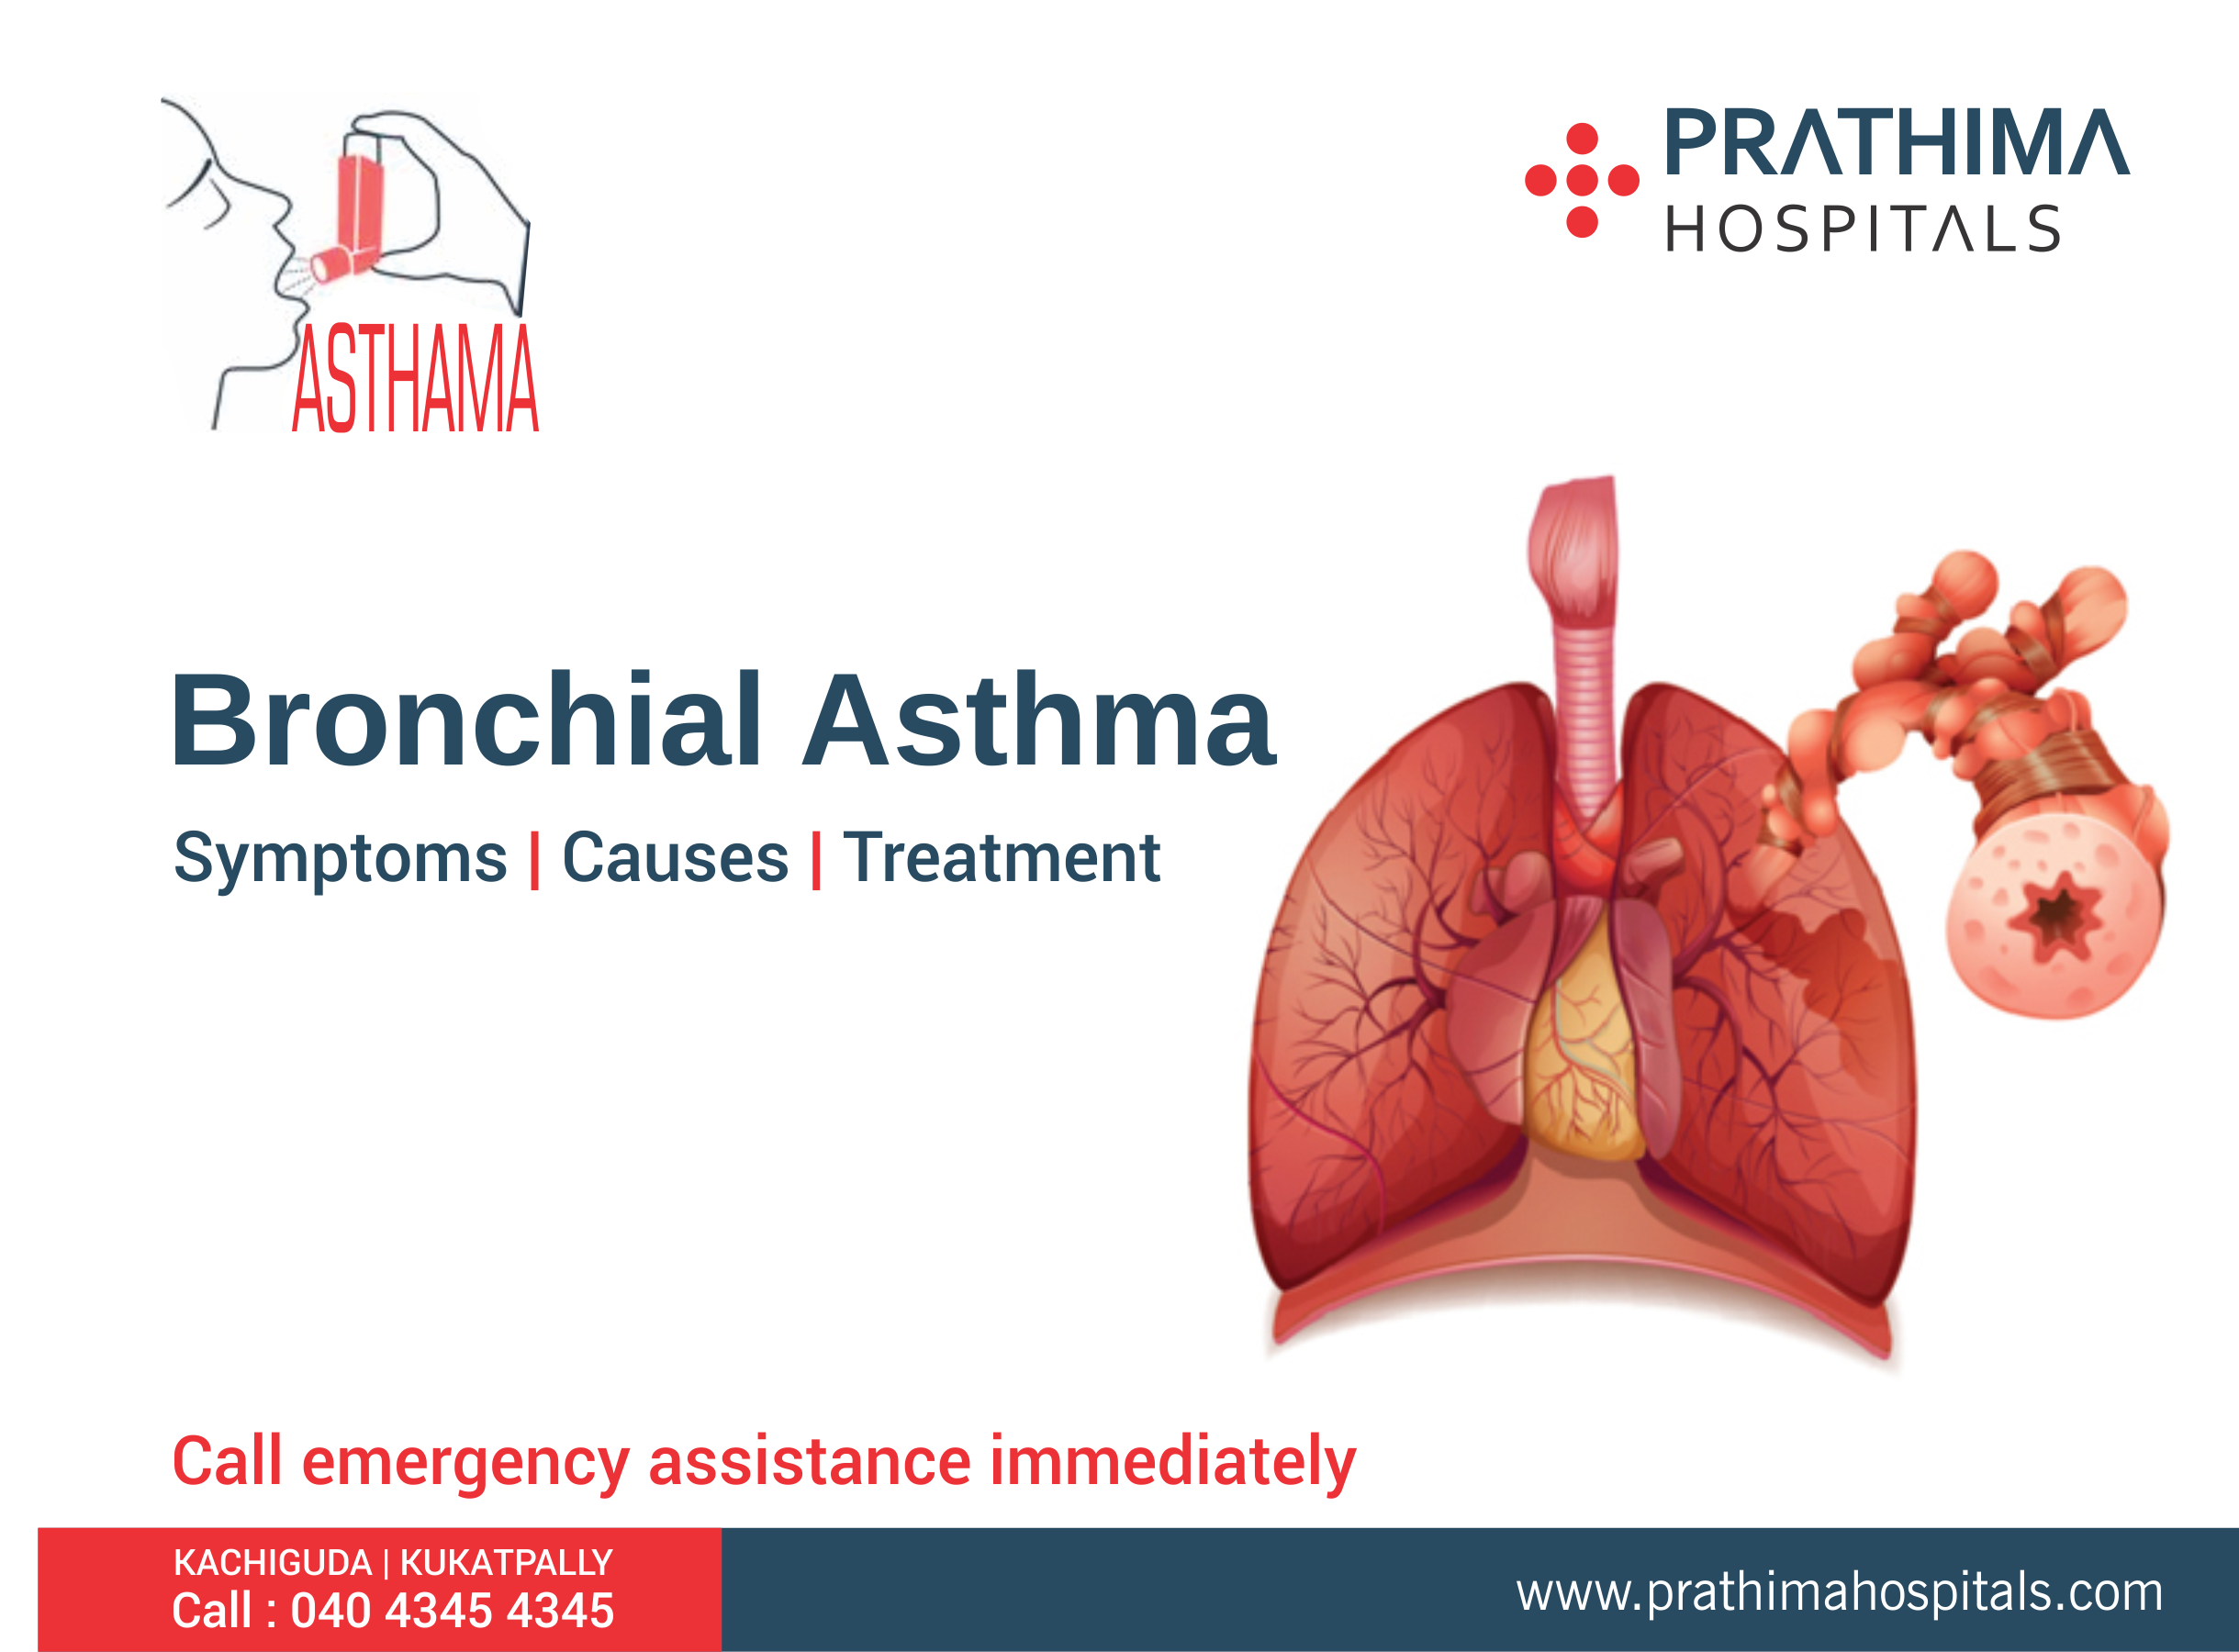 Did You Know Bronchial Asthma? Symptoms, Causes and Treatment